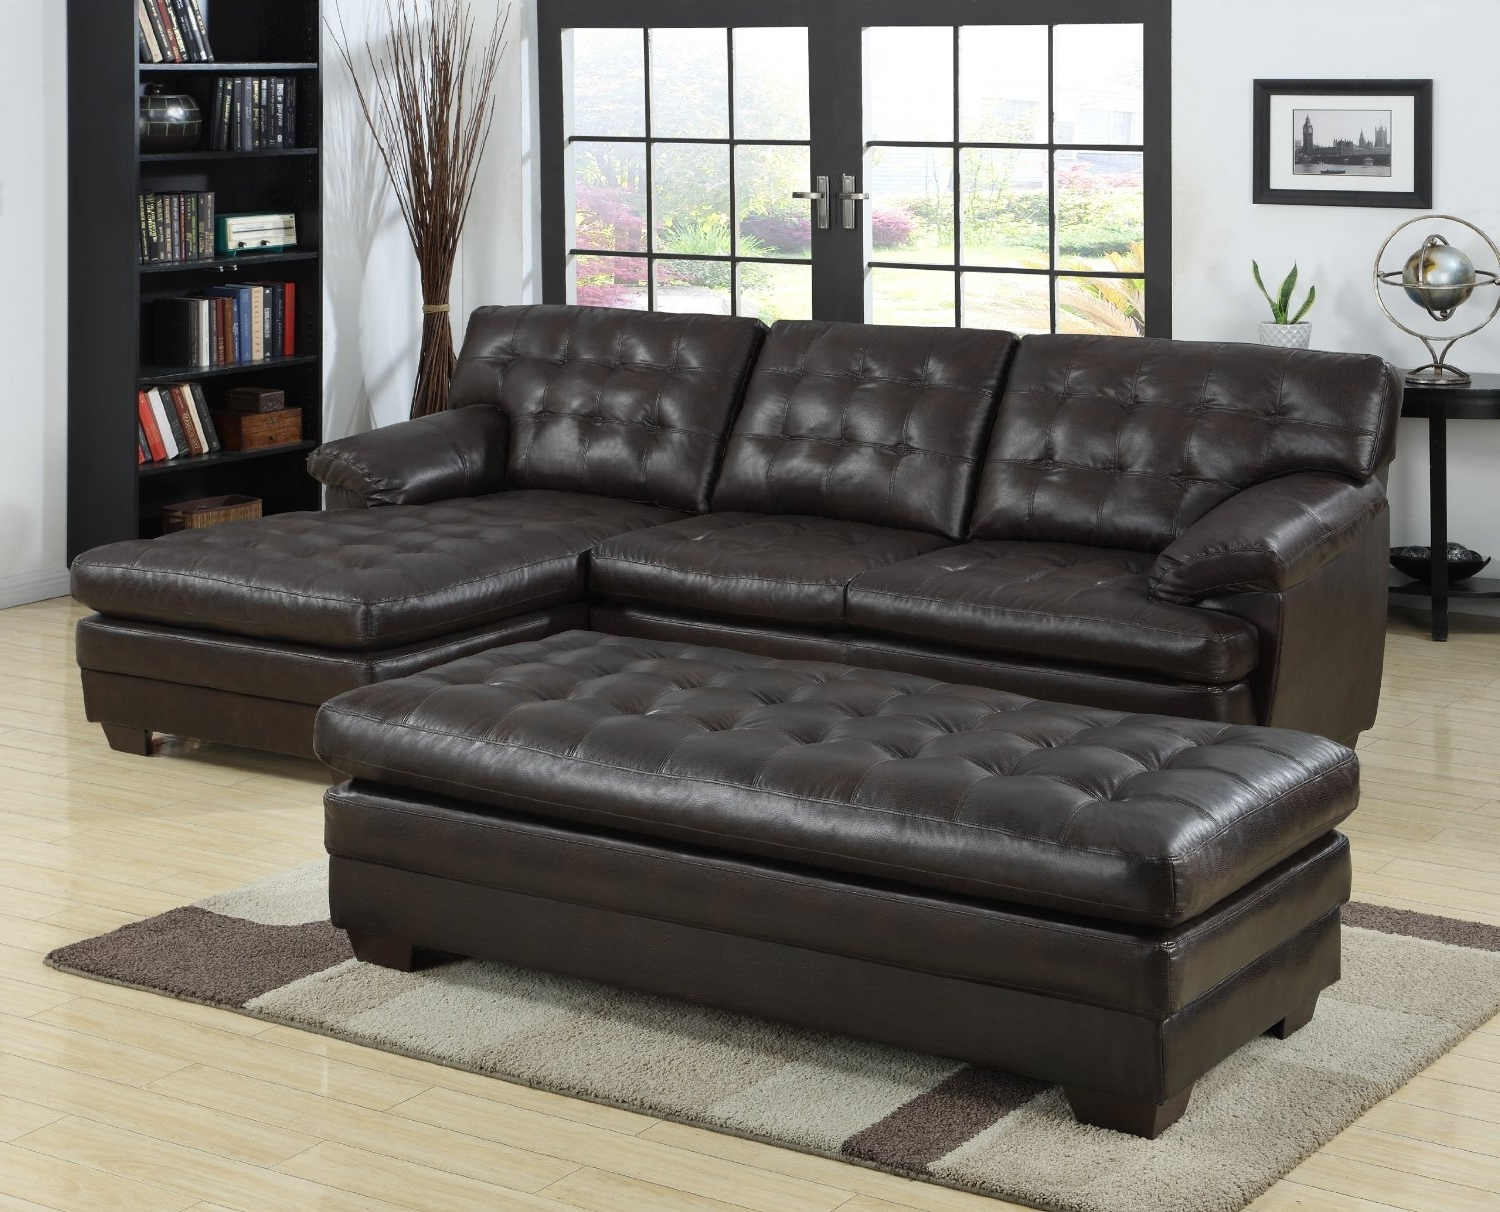 Sectional Sofas With Chaise Lounge And Ottoman With Regard To Recent Black Tufted Leather Sectional Sofa With Chaise And Bench Seat (View 12 of 15)